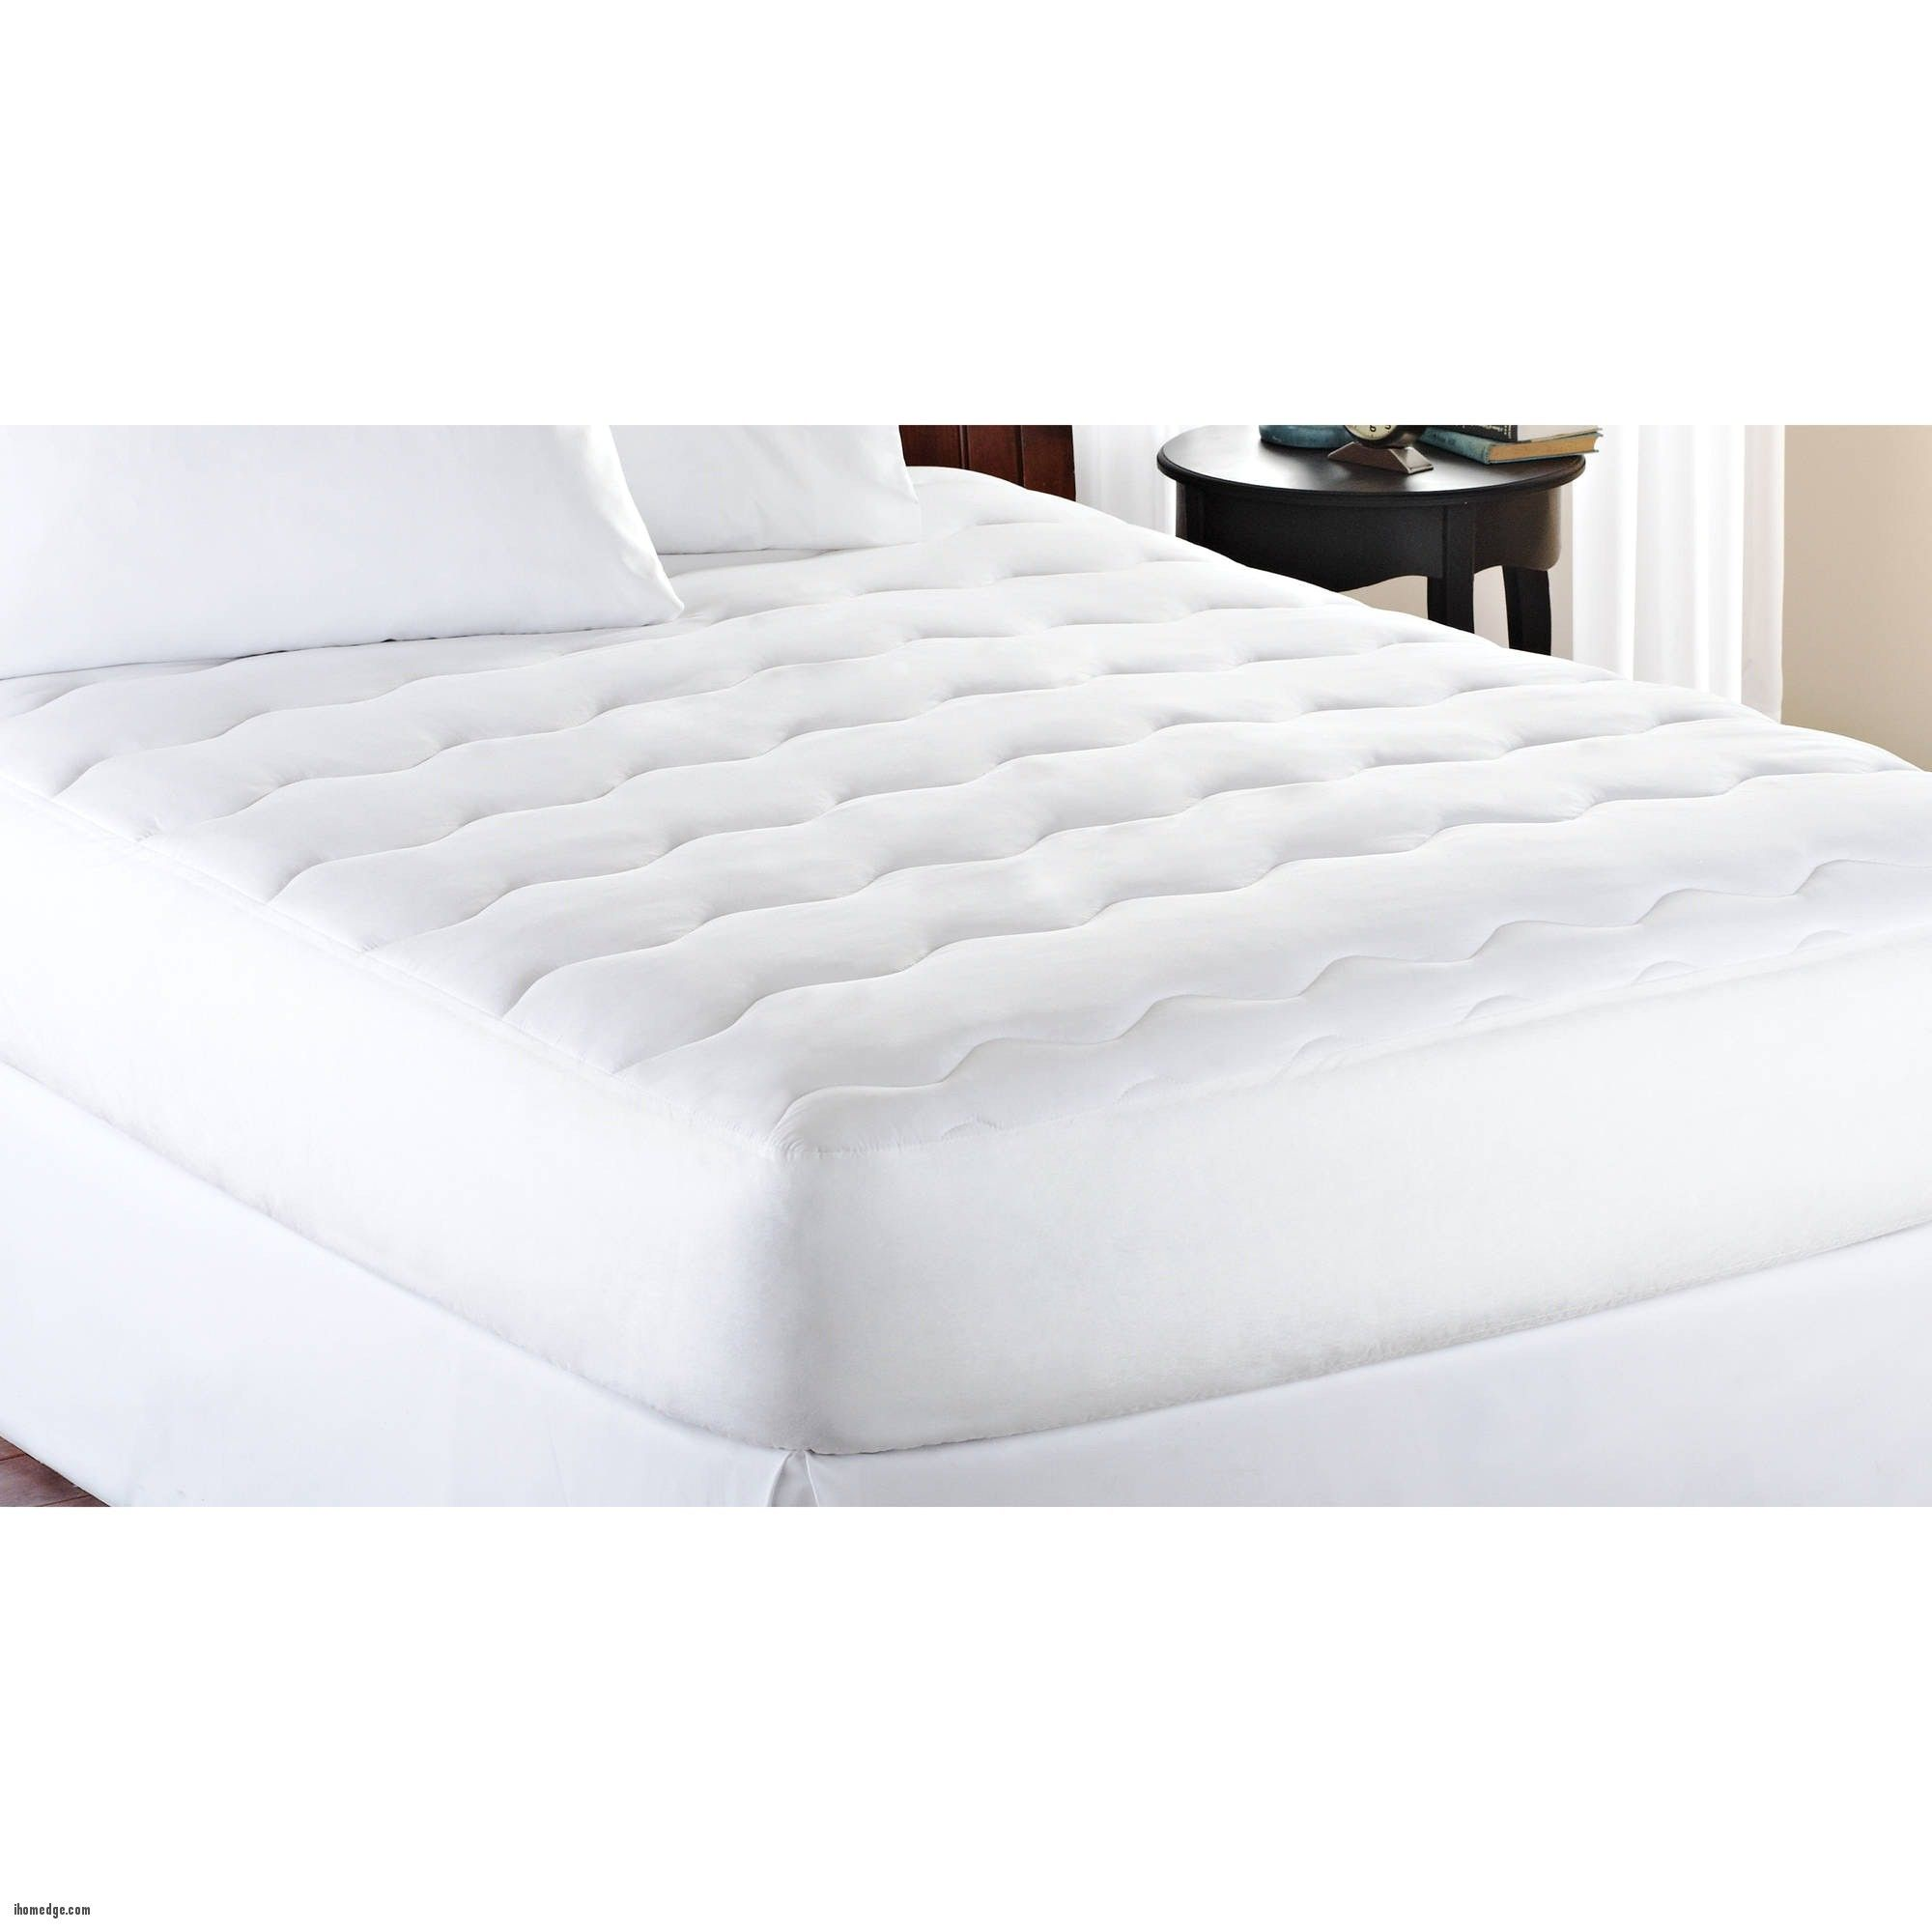 best topper walmart gel costco infused awesome images home foam of reviews mattress design memory